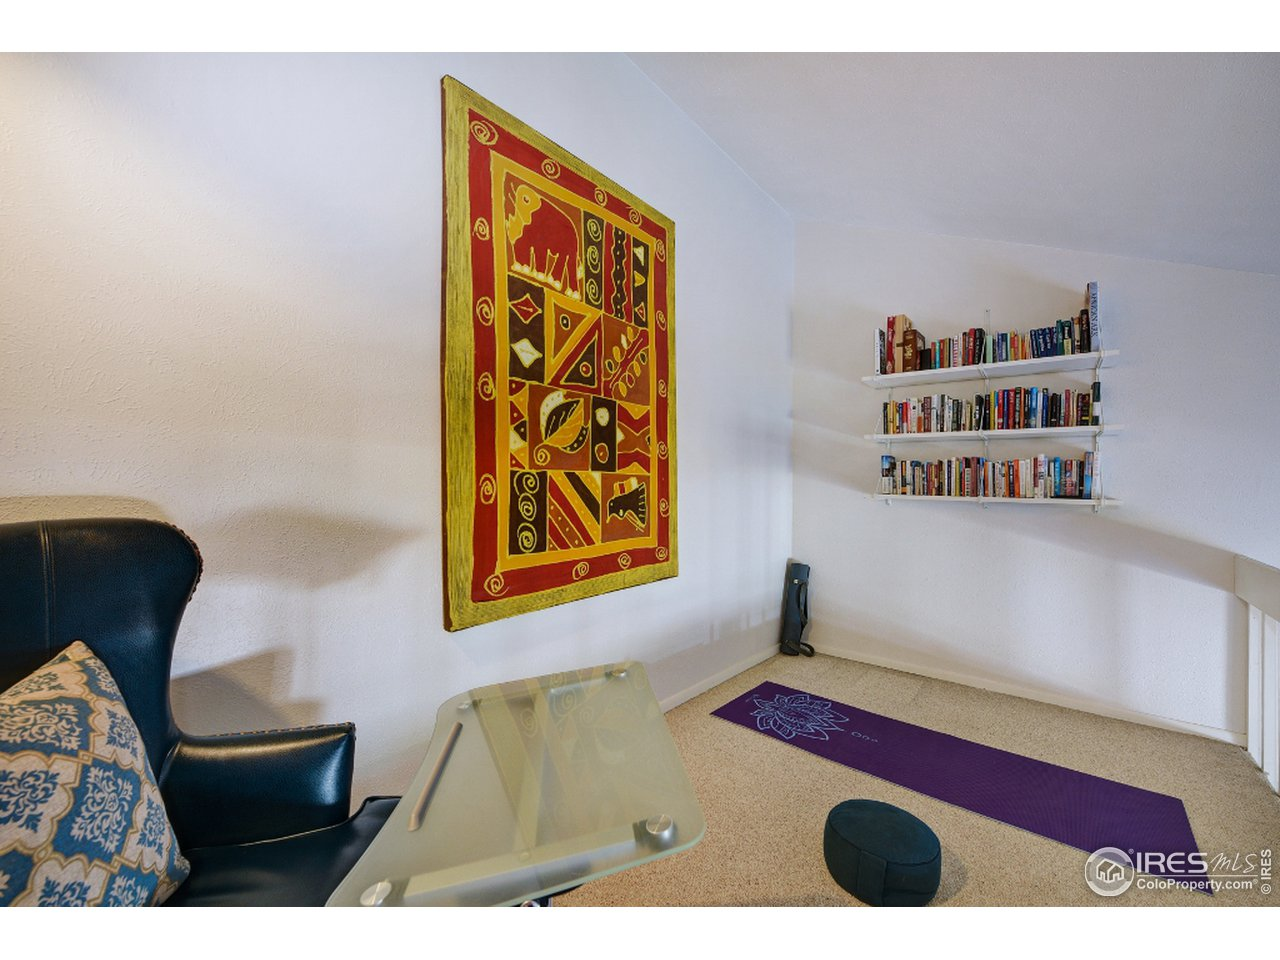 Great loft area for storage or office space.